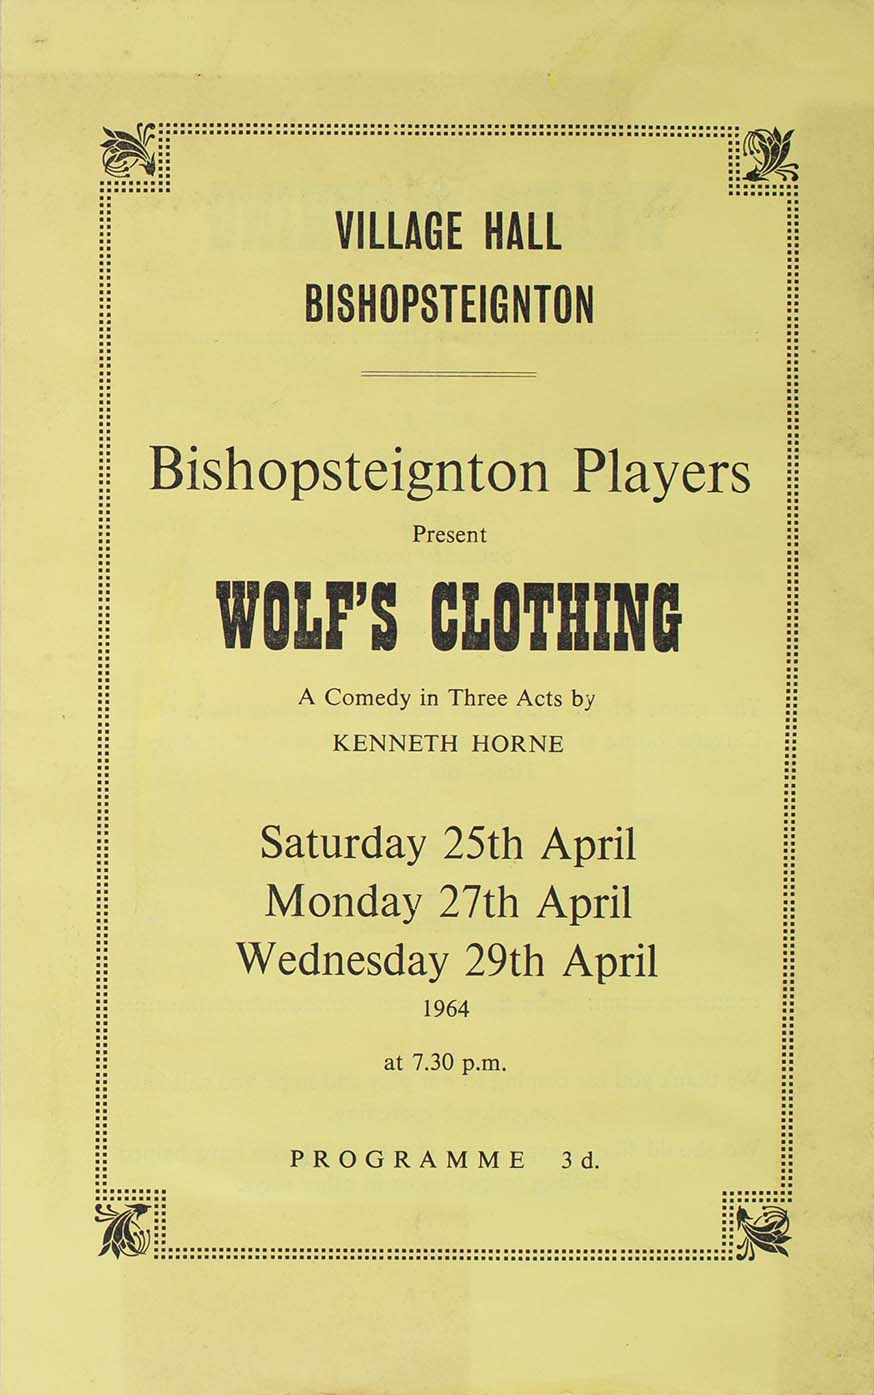 Leaflet to advertise the programme for the play 'Wolf's Clothing' presented by the Bishopsteignton Players front